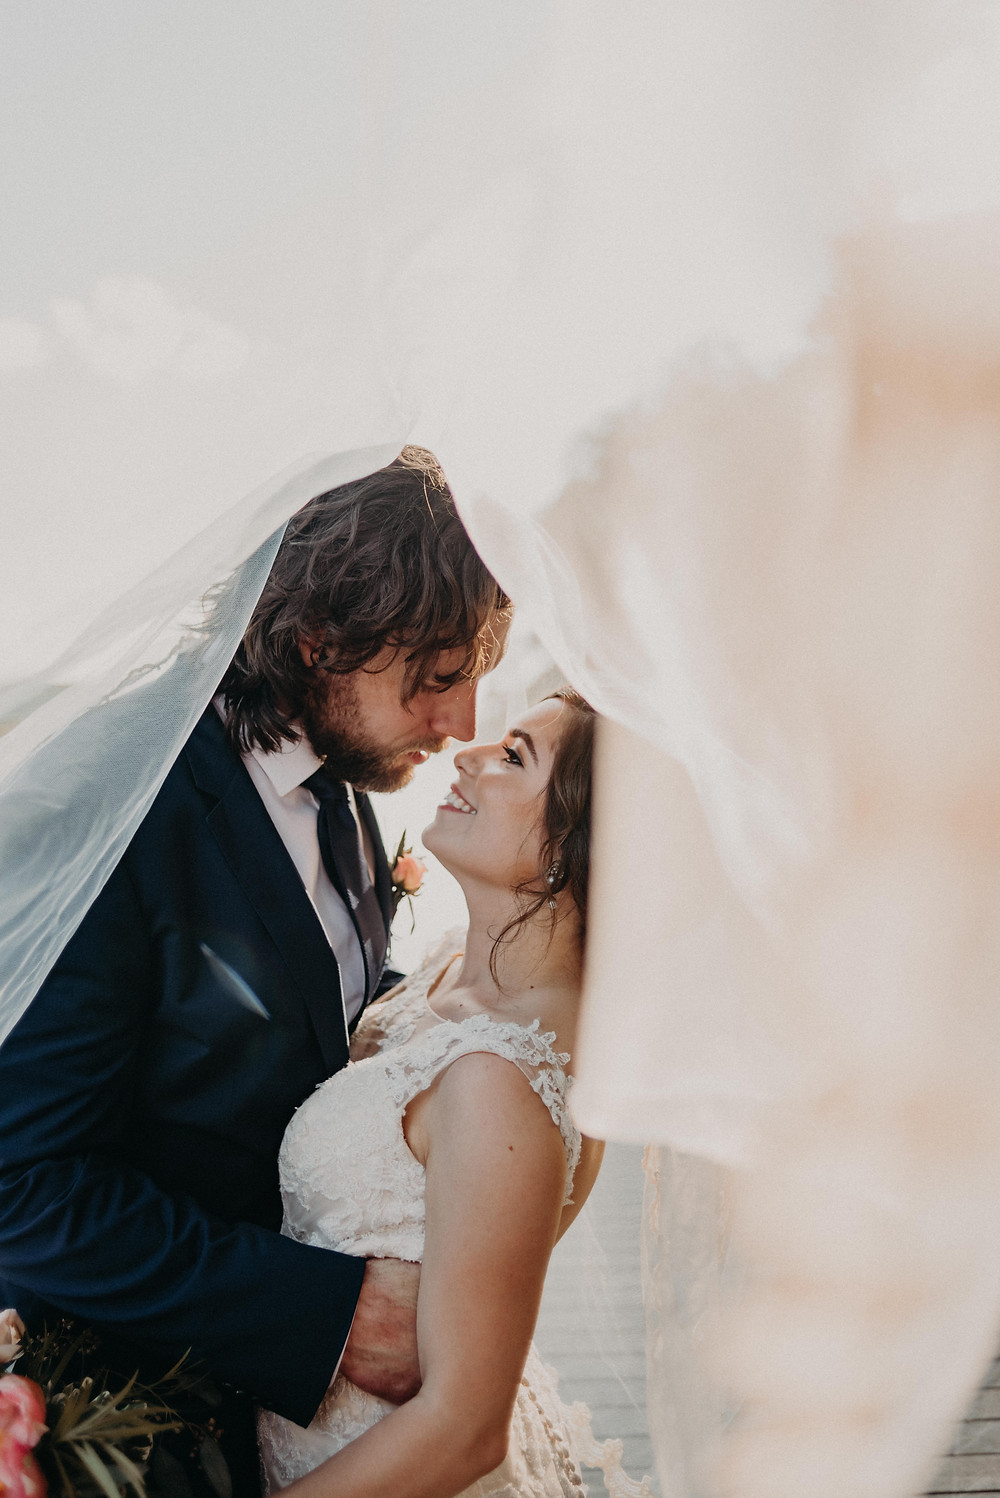 Couple smiling at each other under the veil